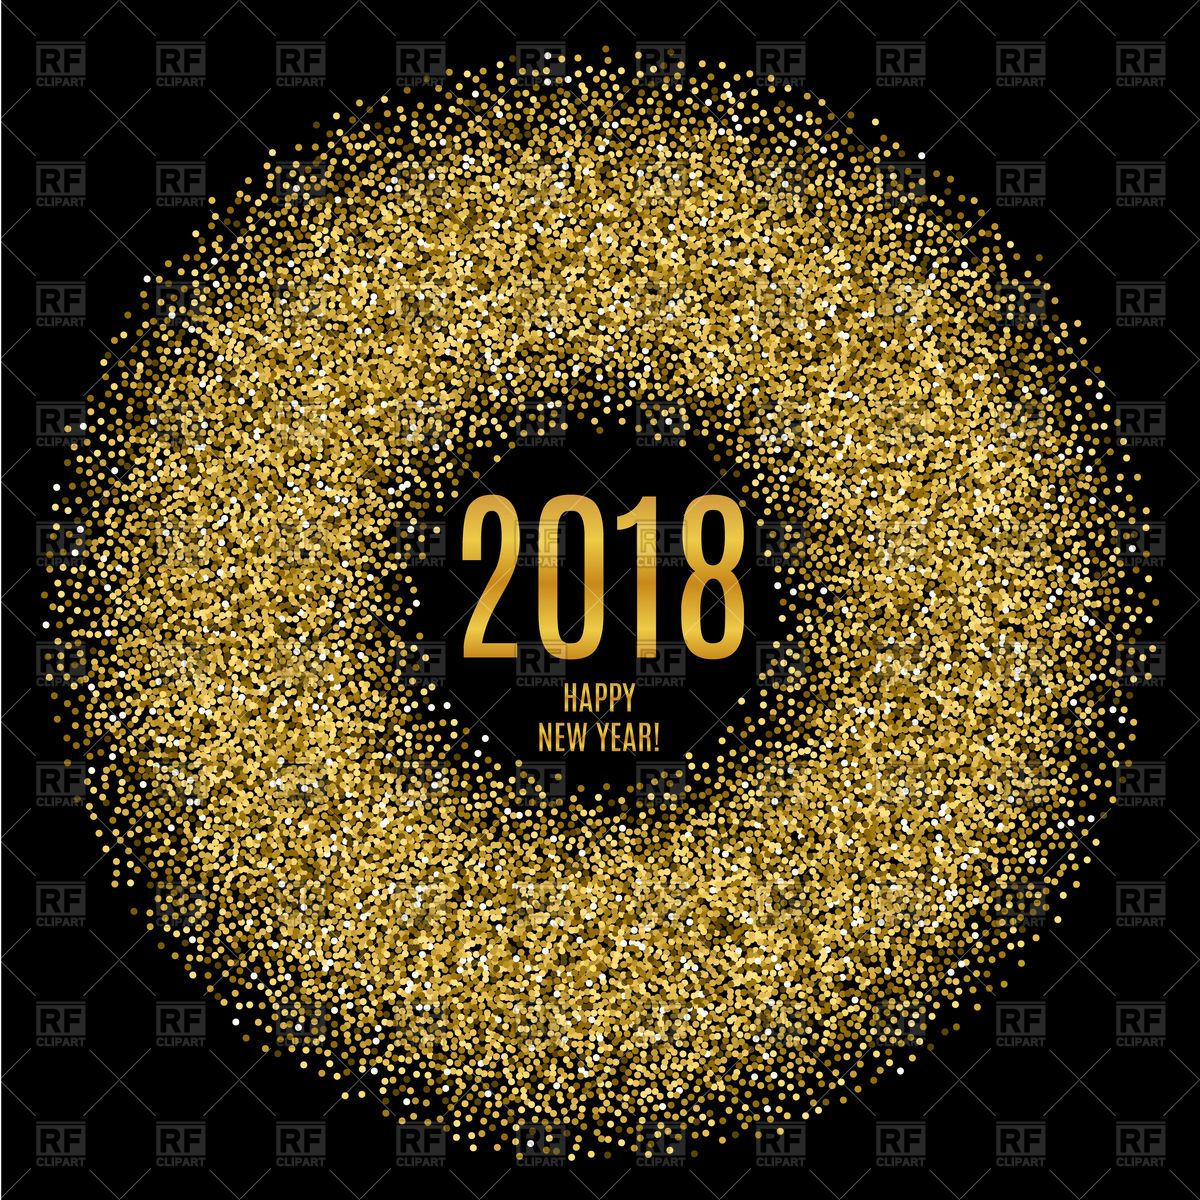 2018 Happy New Year poster with glitter circle Stock Vector.